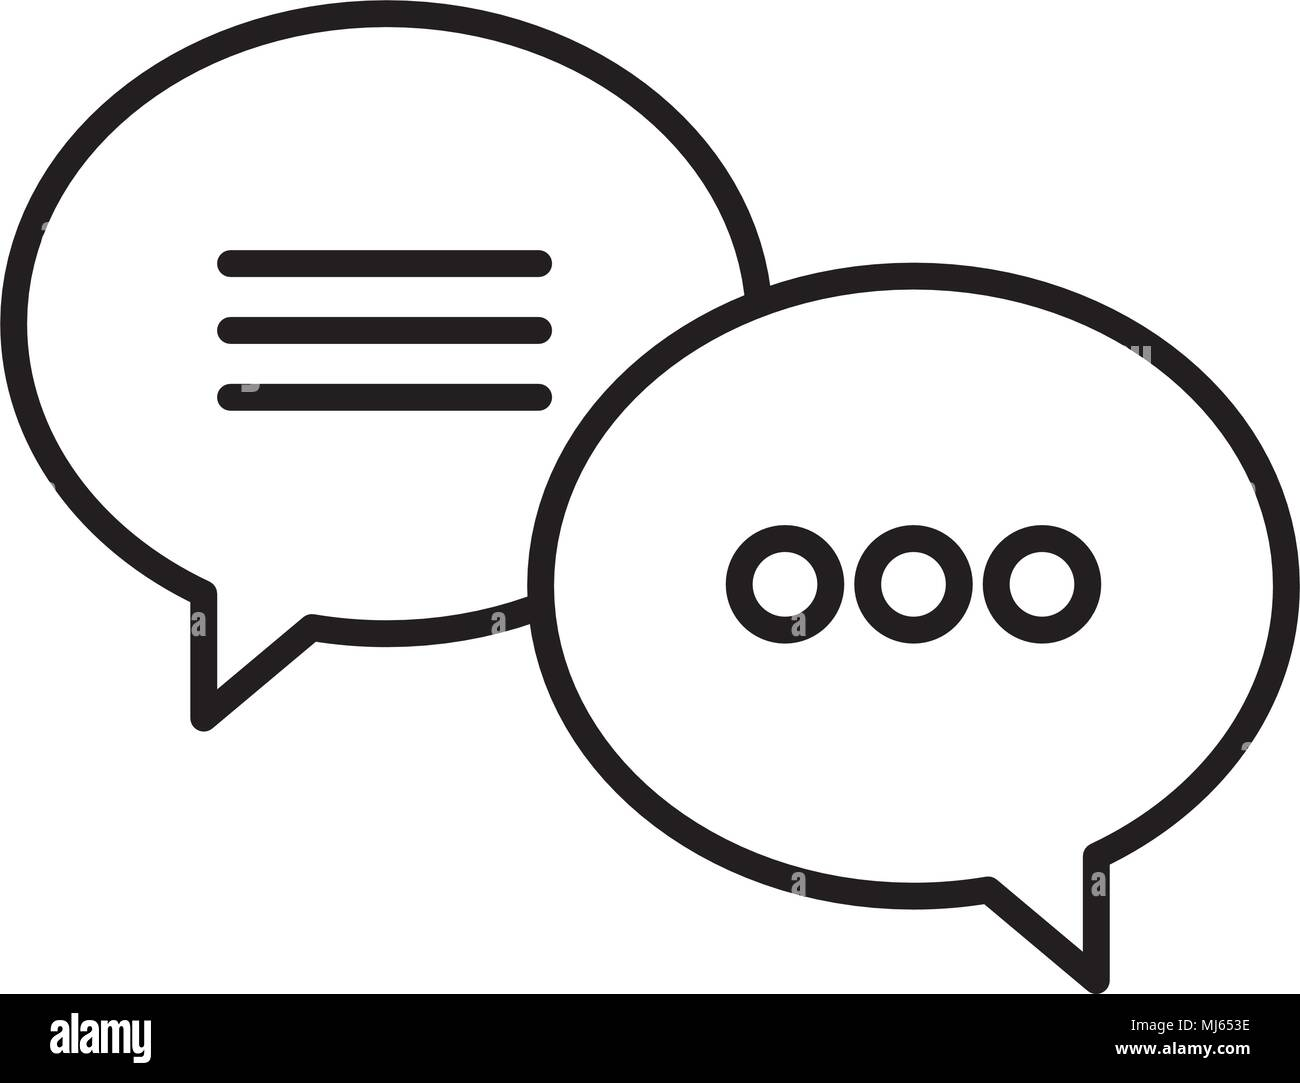 speech bubbles messages icon - Stock Image